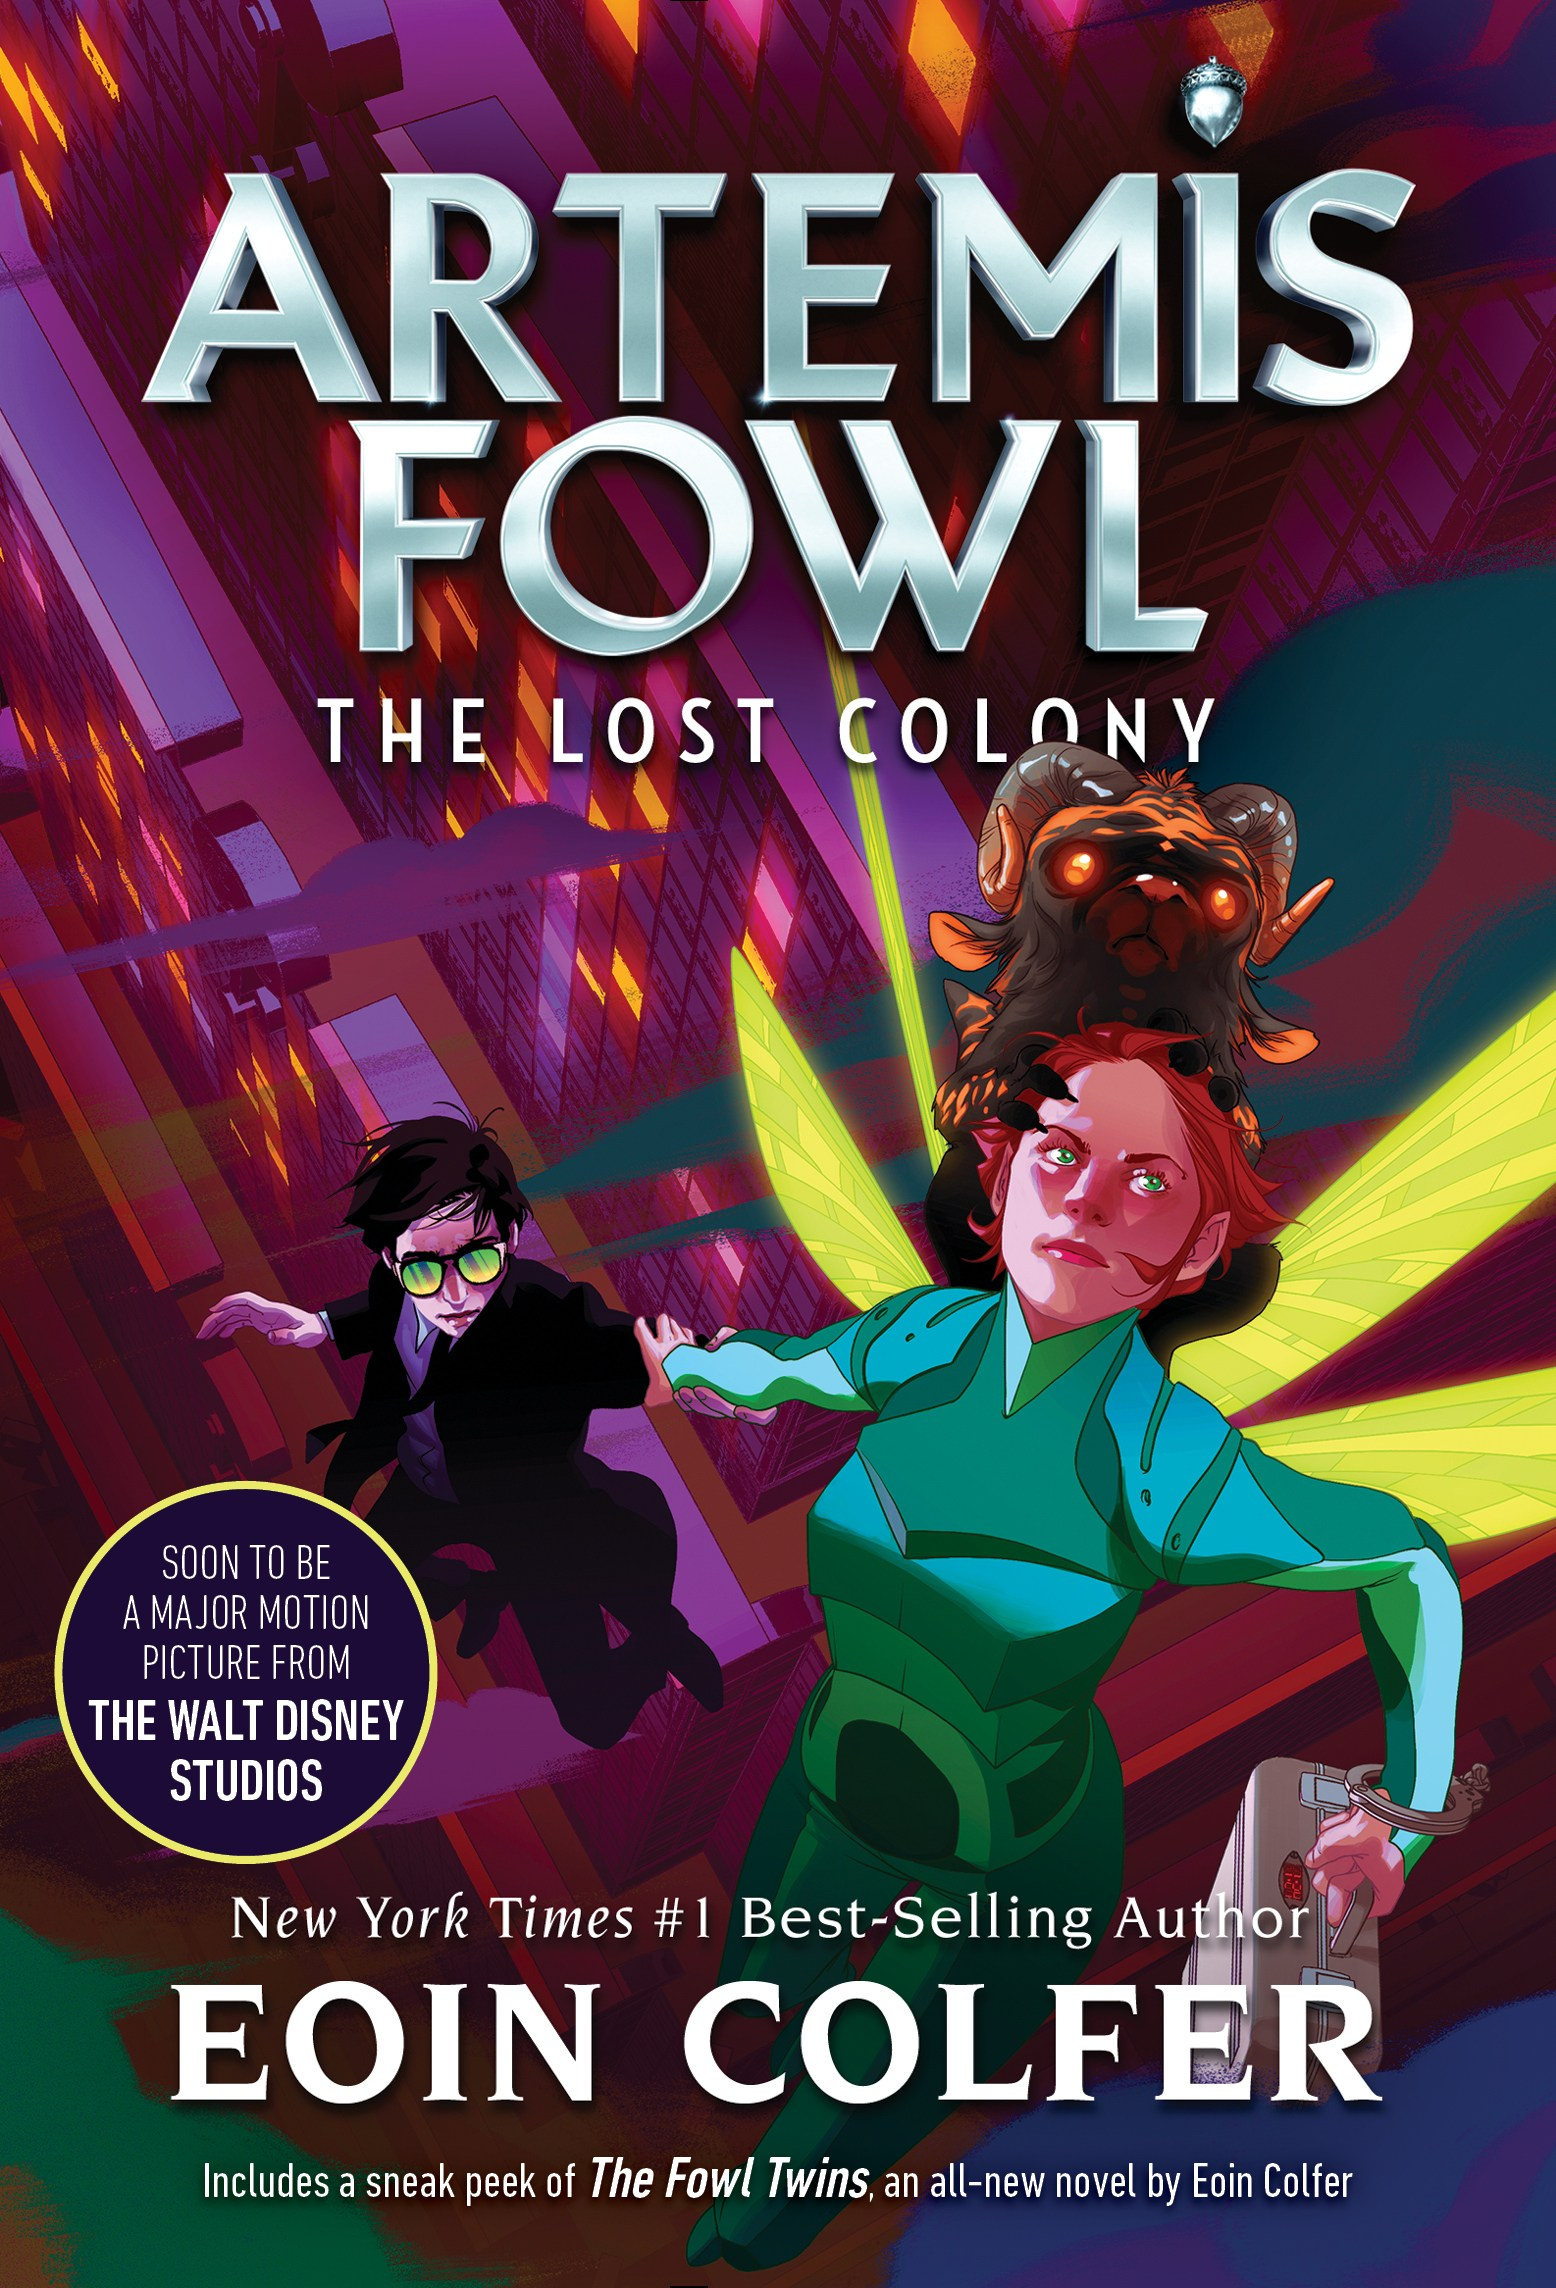 Re-Read Review | The Lost Colony by Artemis Fowl